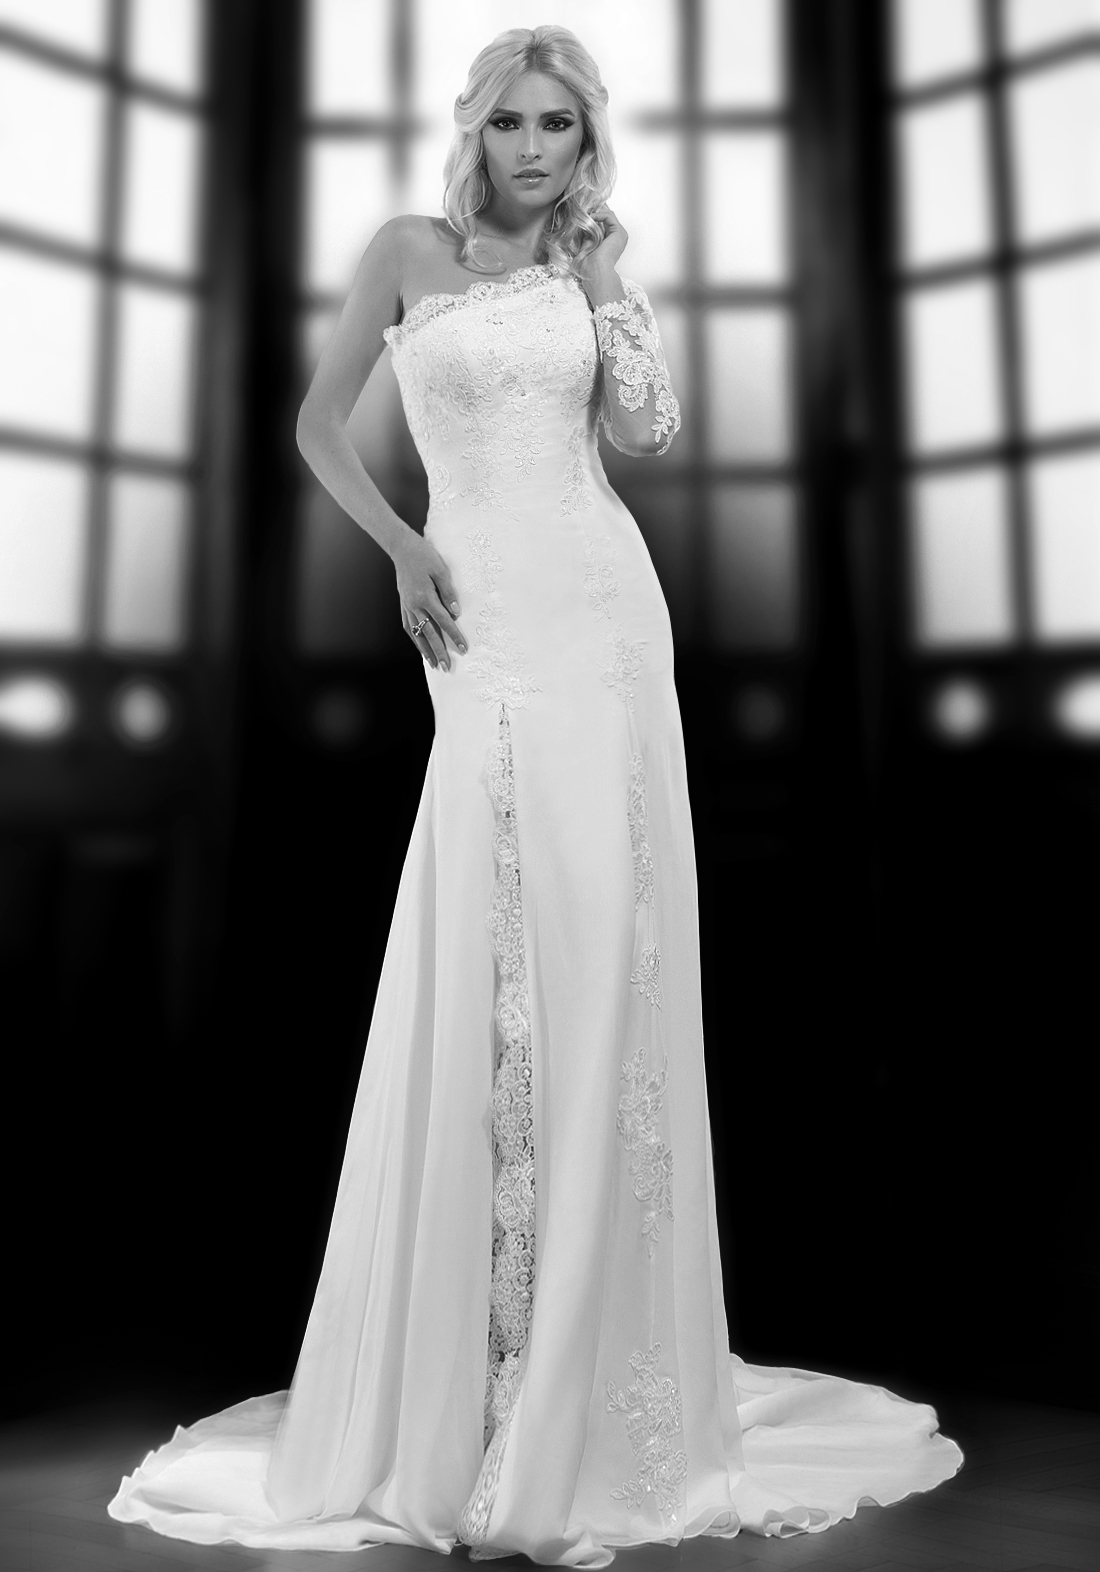 bien-savvy-wedding-dresses-2014-collection-40-01232014